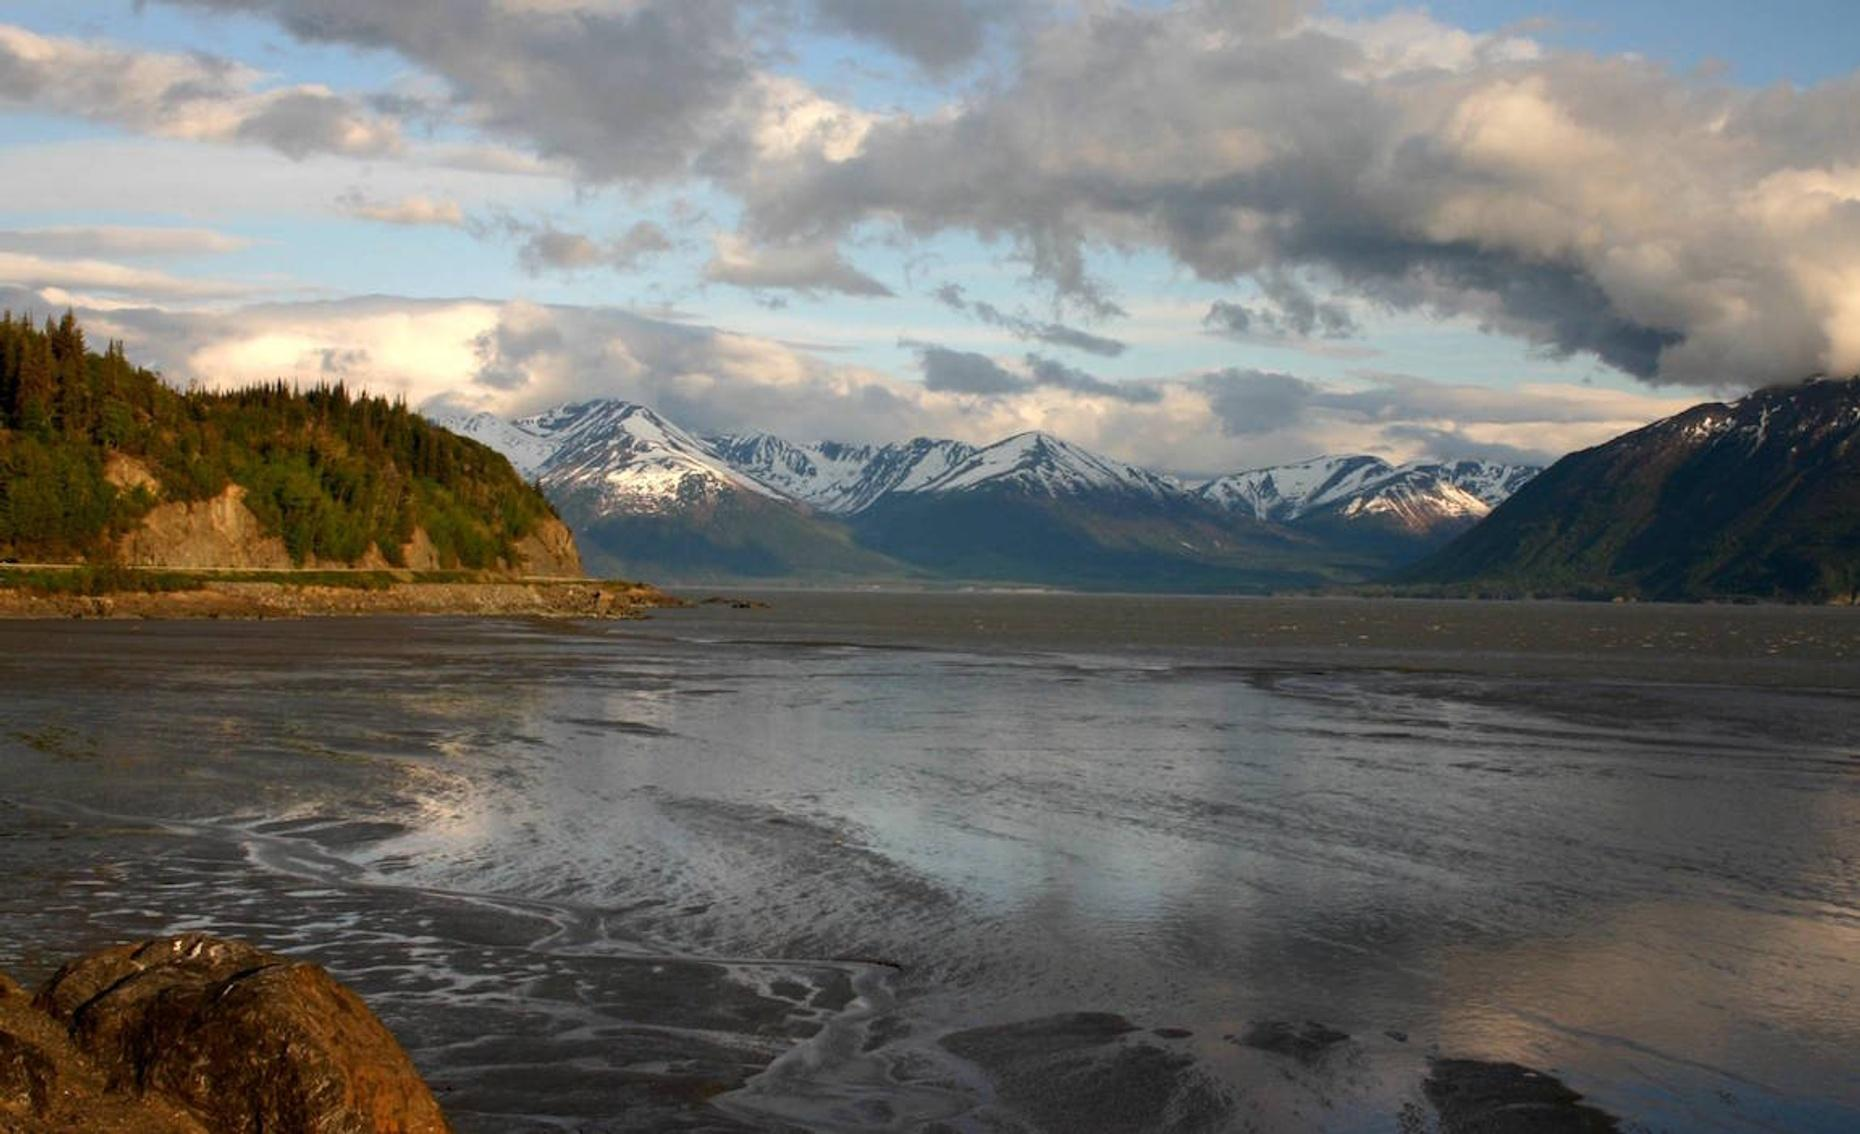 Half-Day Bus Tour from Anchorage to Whittier